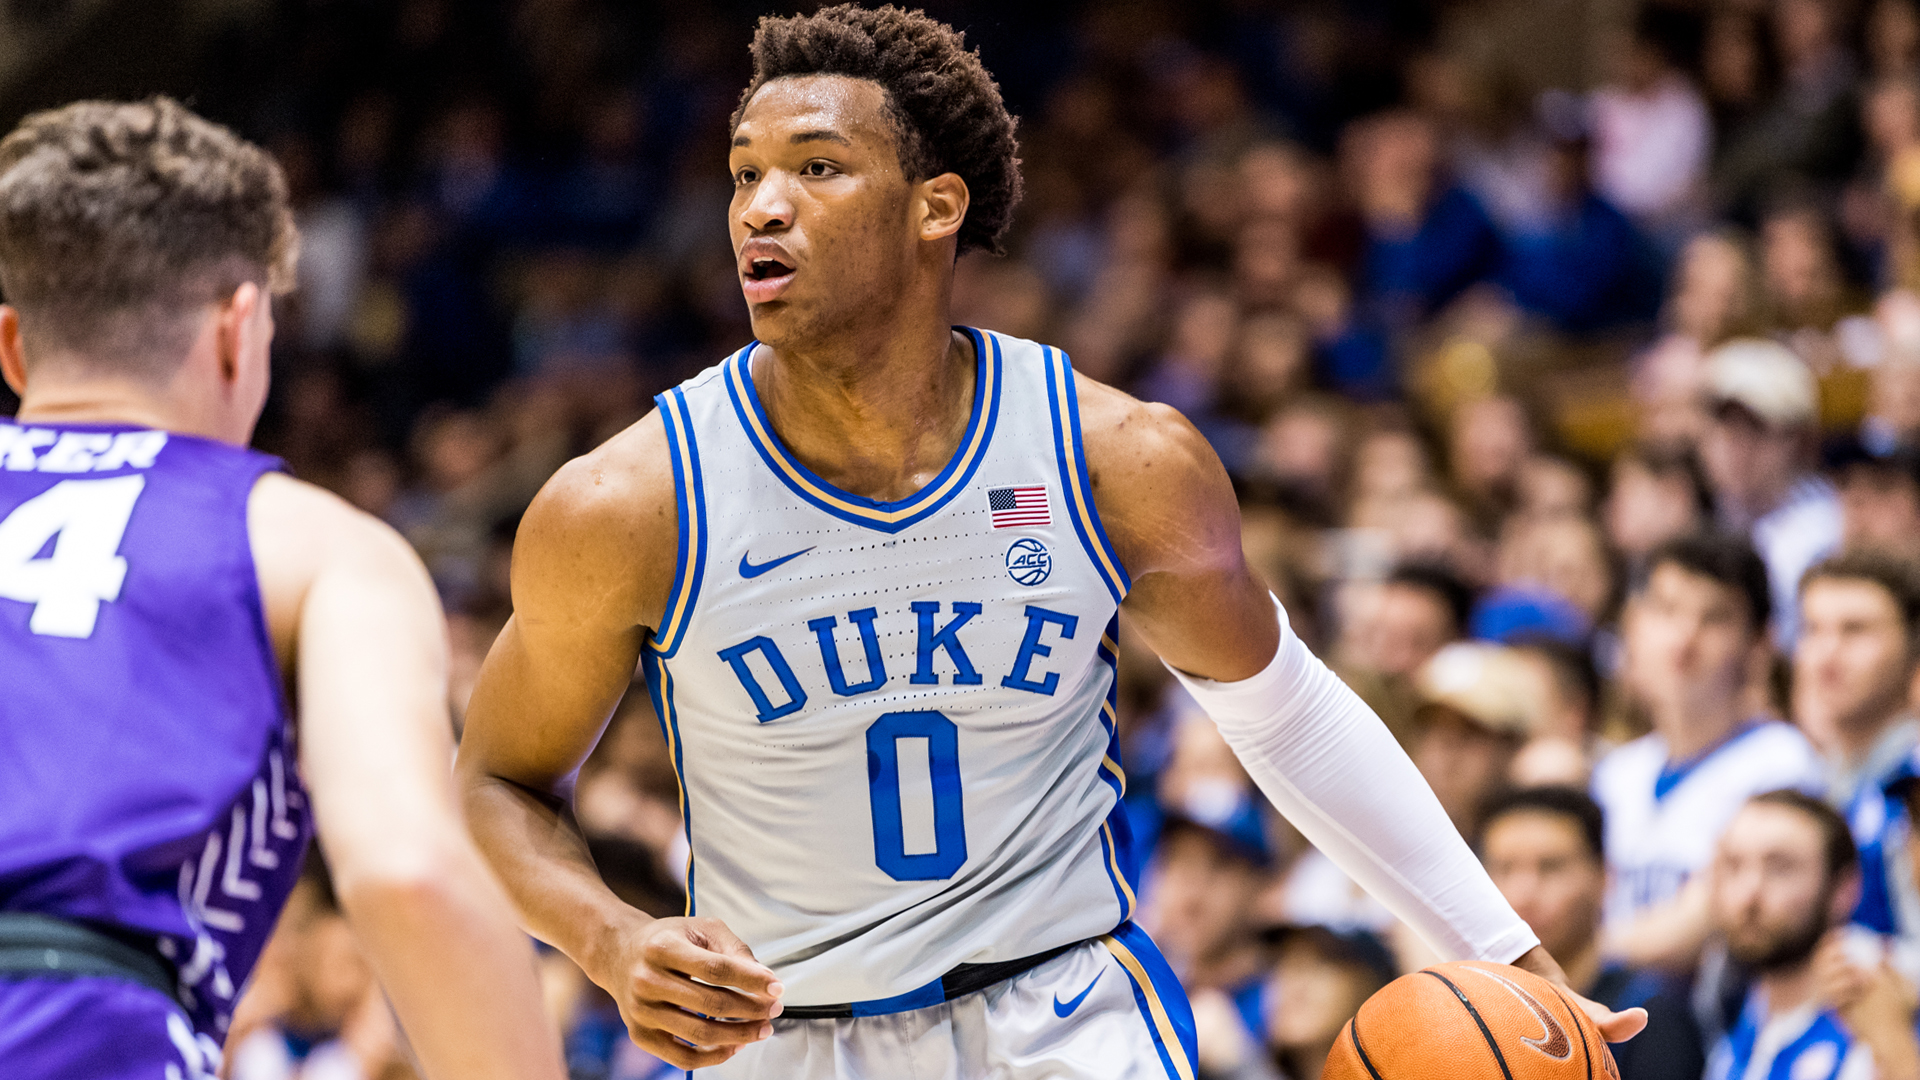 Duke notebook on football and basketball